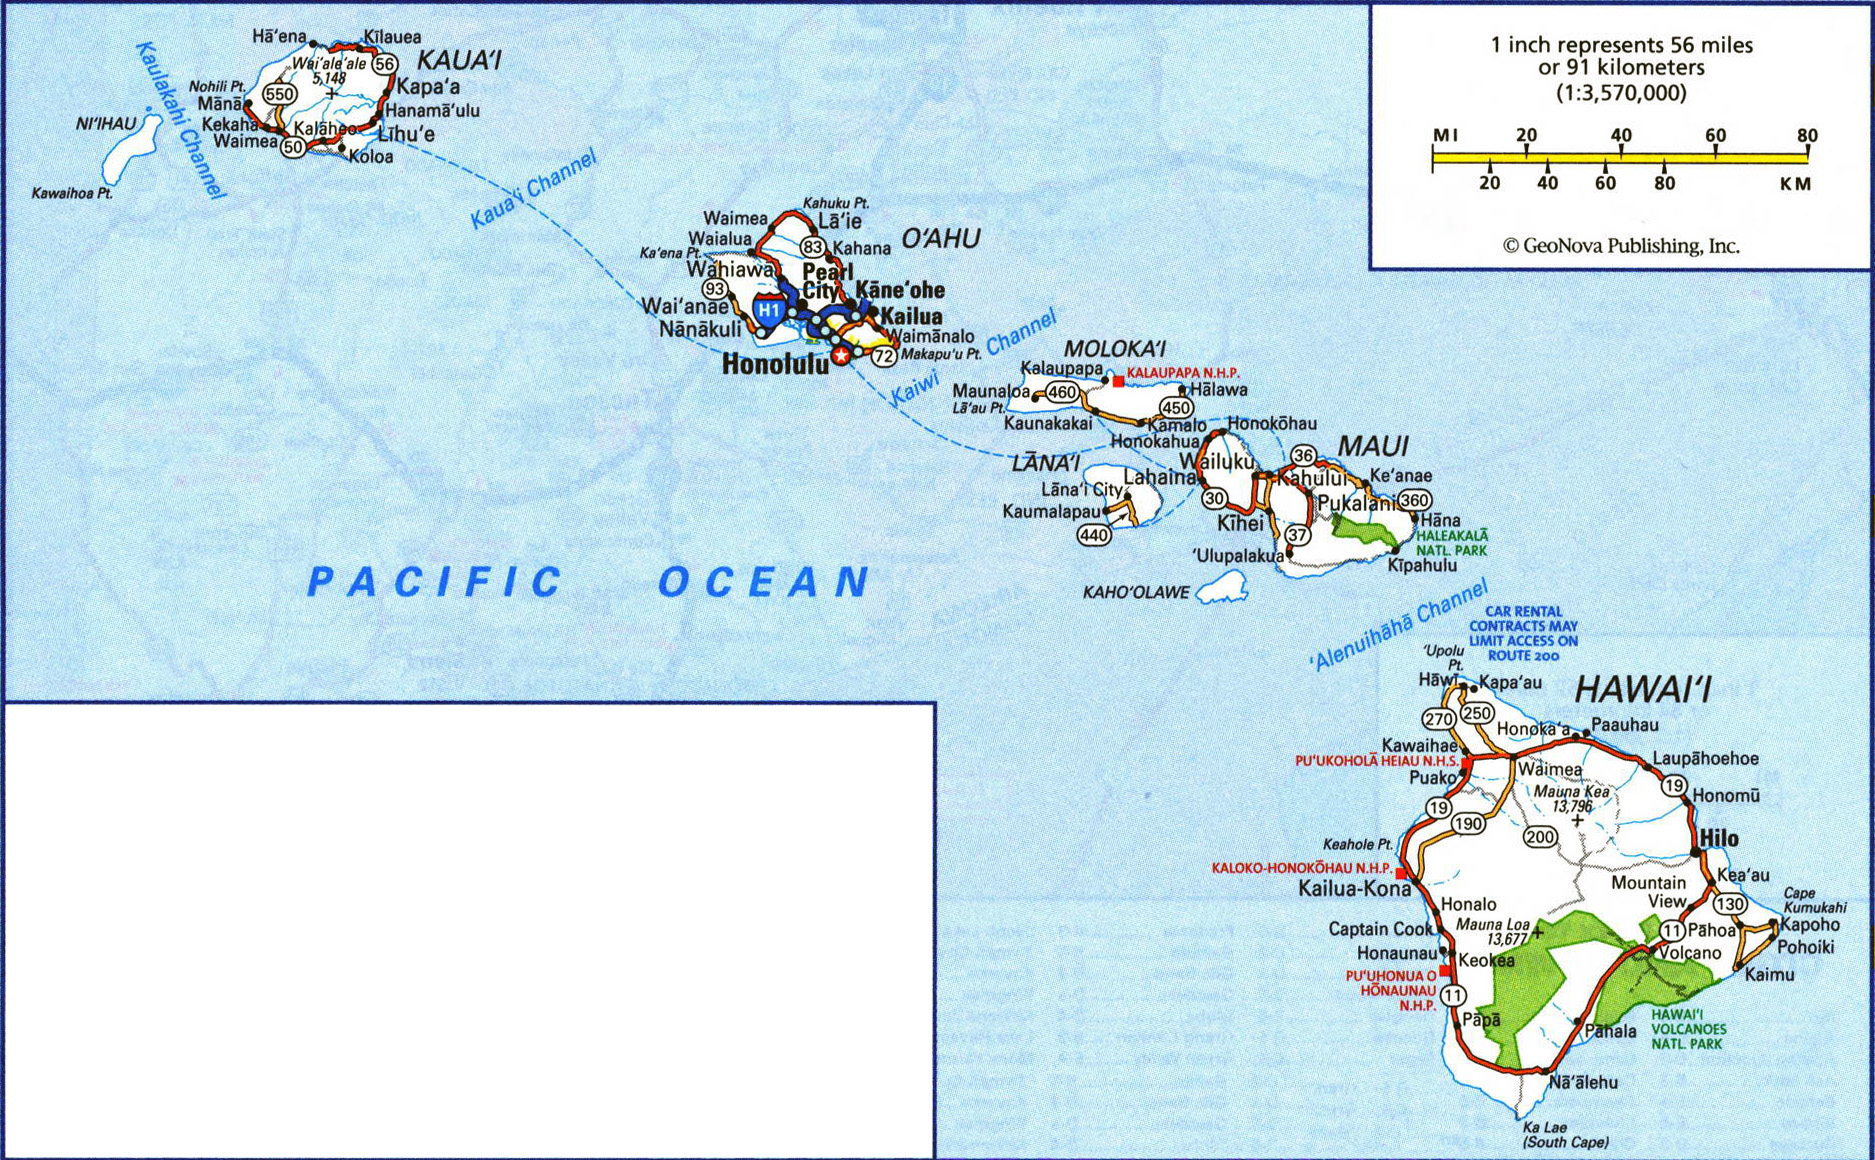 Large Road Map Of Hawaii Islands With All Cities And Villages - Hawaii cities map